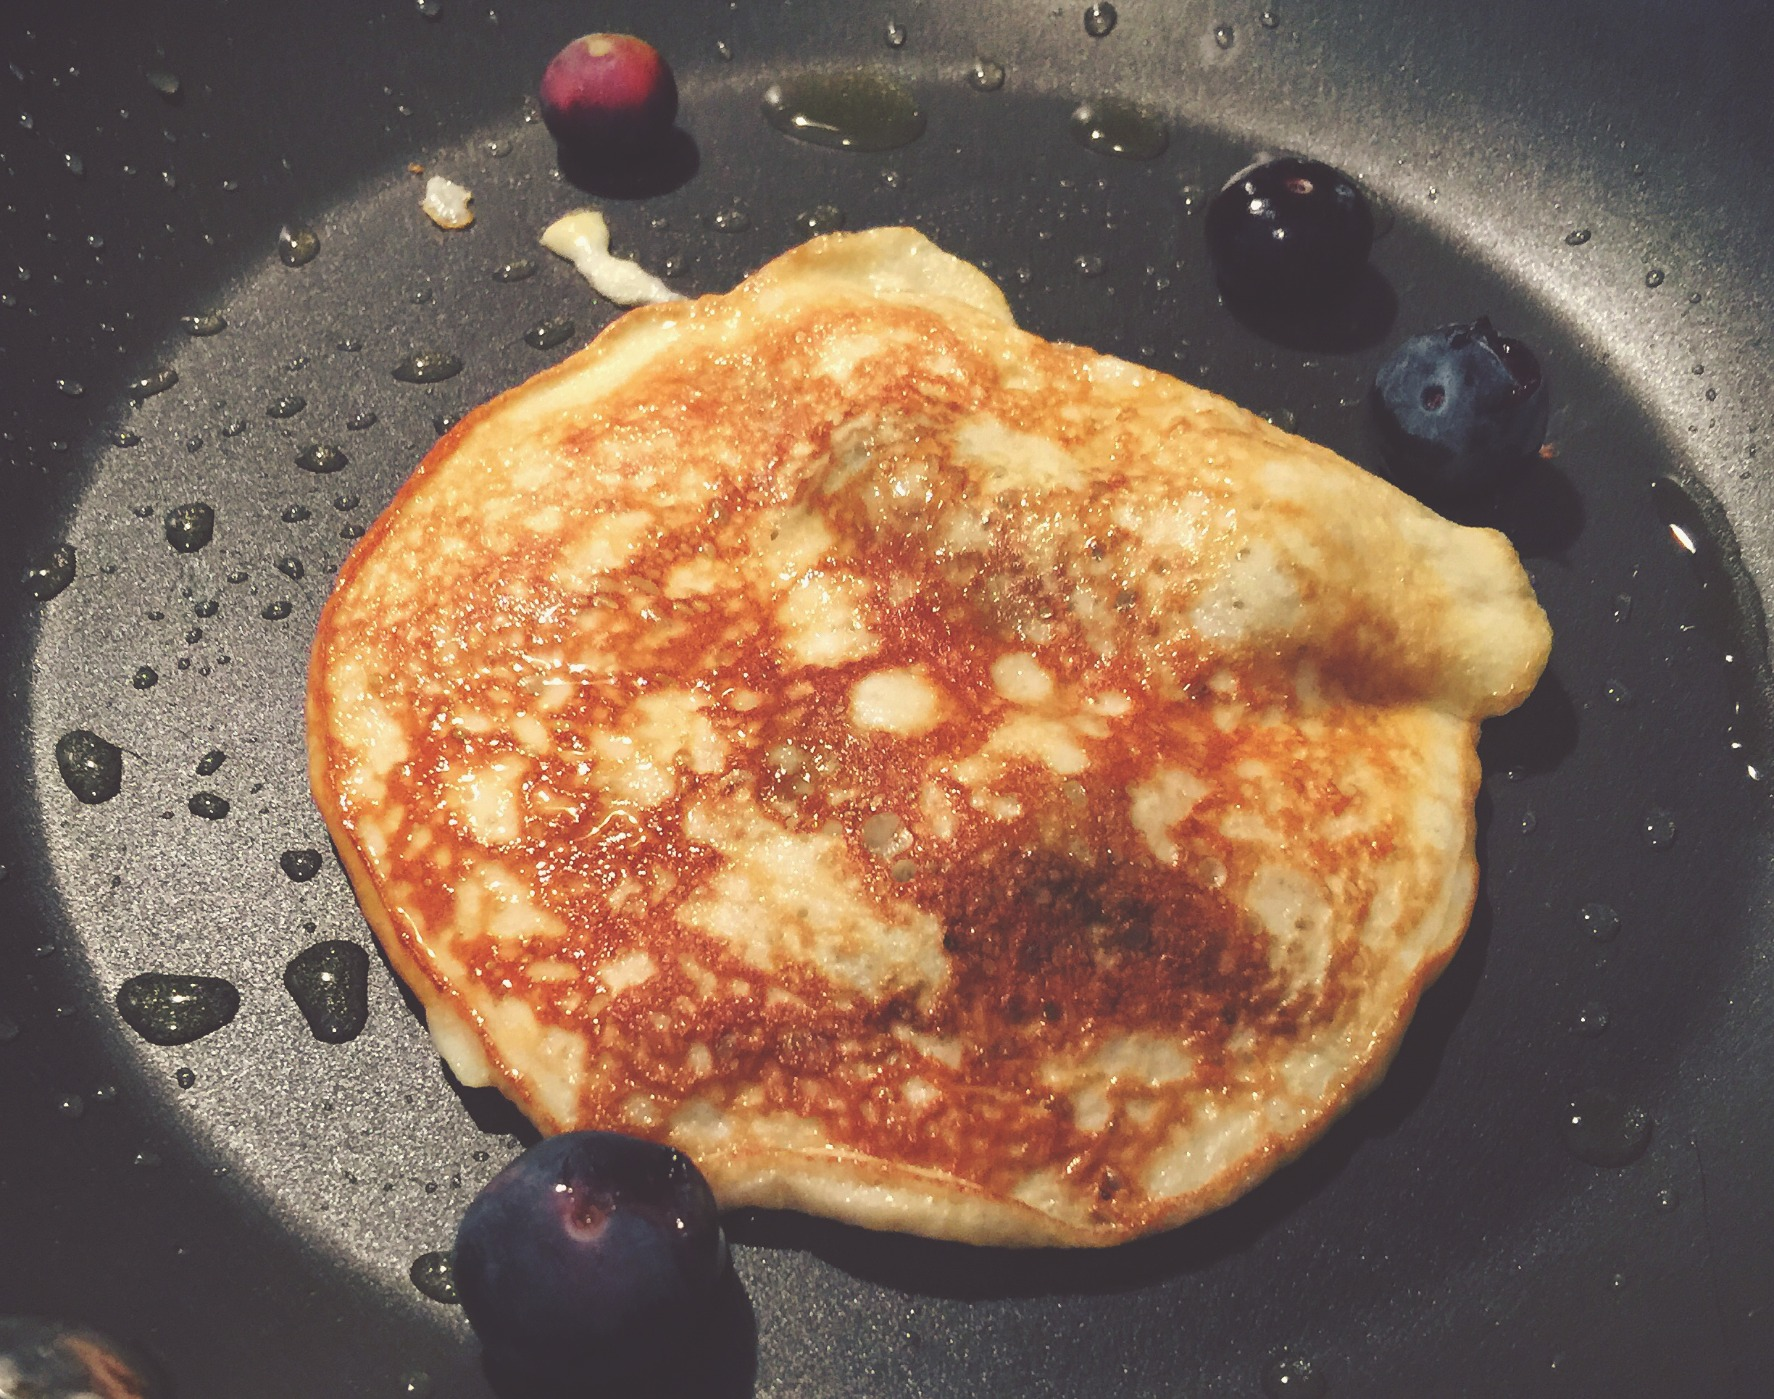 banana-egg pancakes with protein powder and blueberries